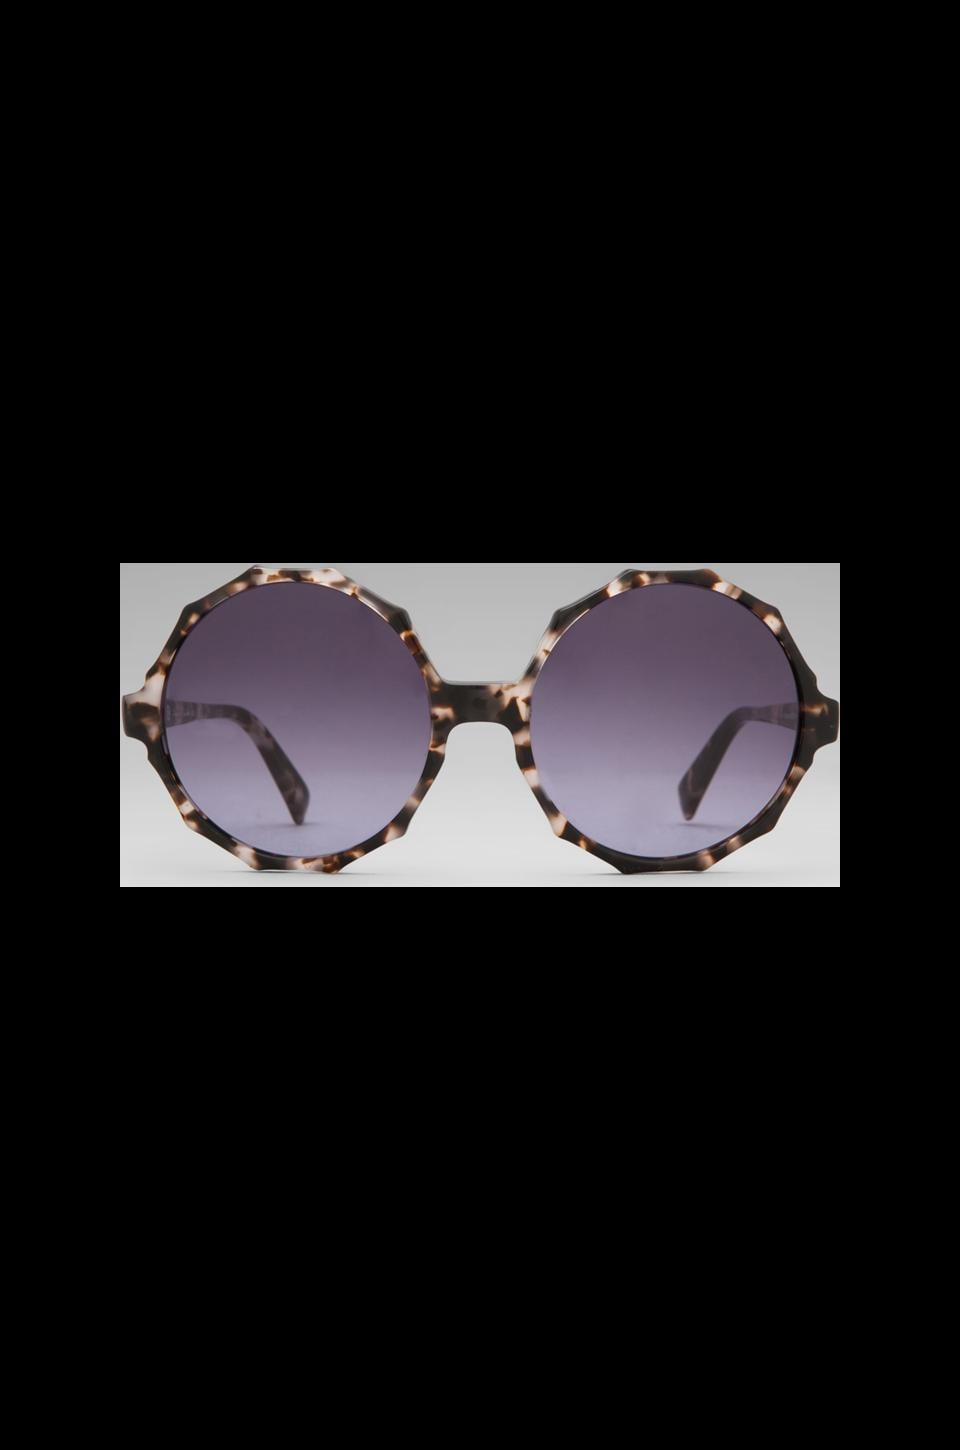 House of Harlow 1960 House of Harlow Penny Sunglasses in Clear Tortoise